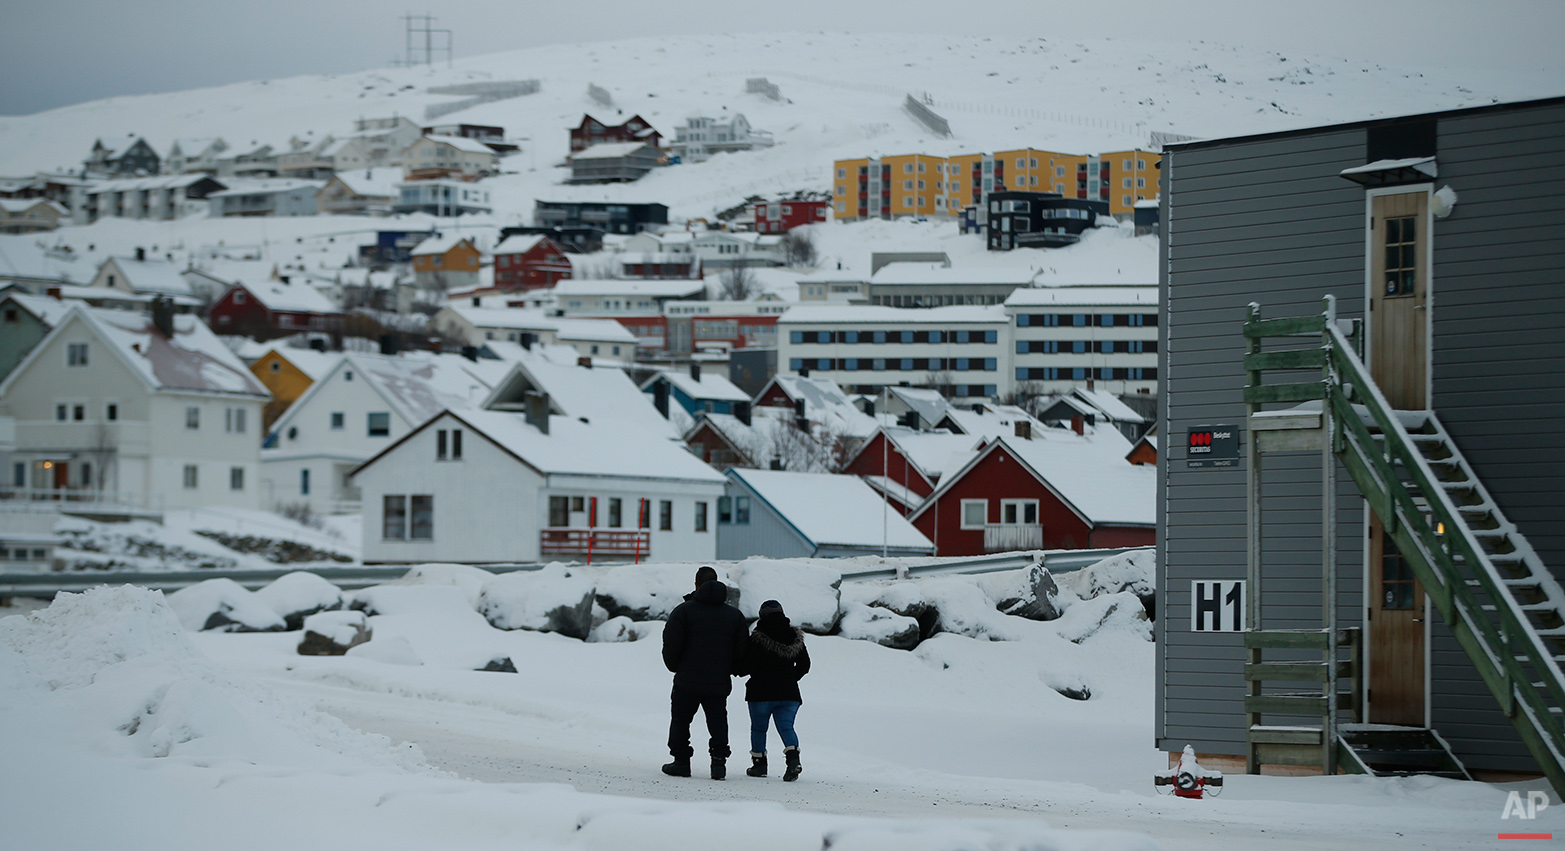 In this photo taken Thursday, Feb. 4, 2016, asylum seekers leave the refugee camp in Hammerfest to walk to the town's centre in northern Norway. Waiting for their asylum claims to be processed, hundreds of people in emergency shelters in Hammerfest and neighboring towns are slowly getting used to the extreme climate and unfamiliar customs of the High North. They say they have adapted to the cold _ the temperature rarely drops below minus 10 degrees C (14 F) along the coast, though it gets much colder further inland. It's the darkness that throws them off. (AP Photo/Alastair Grant)